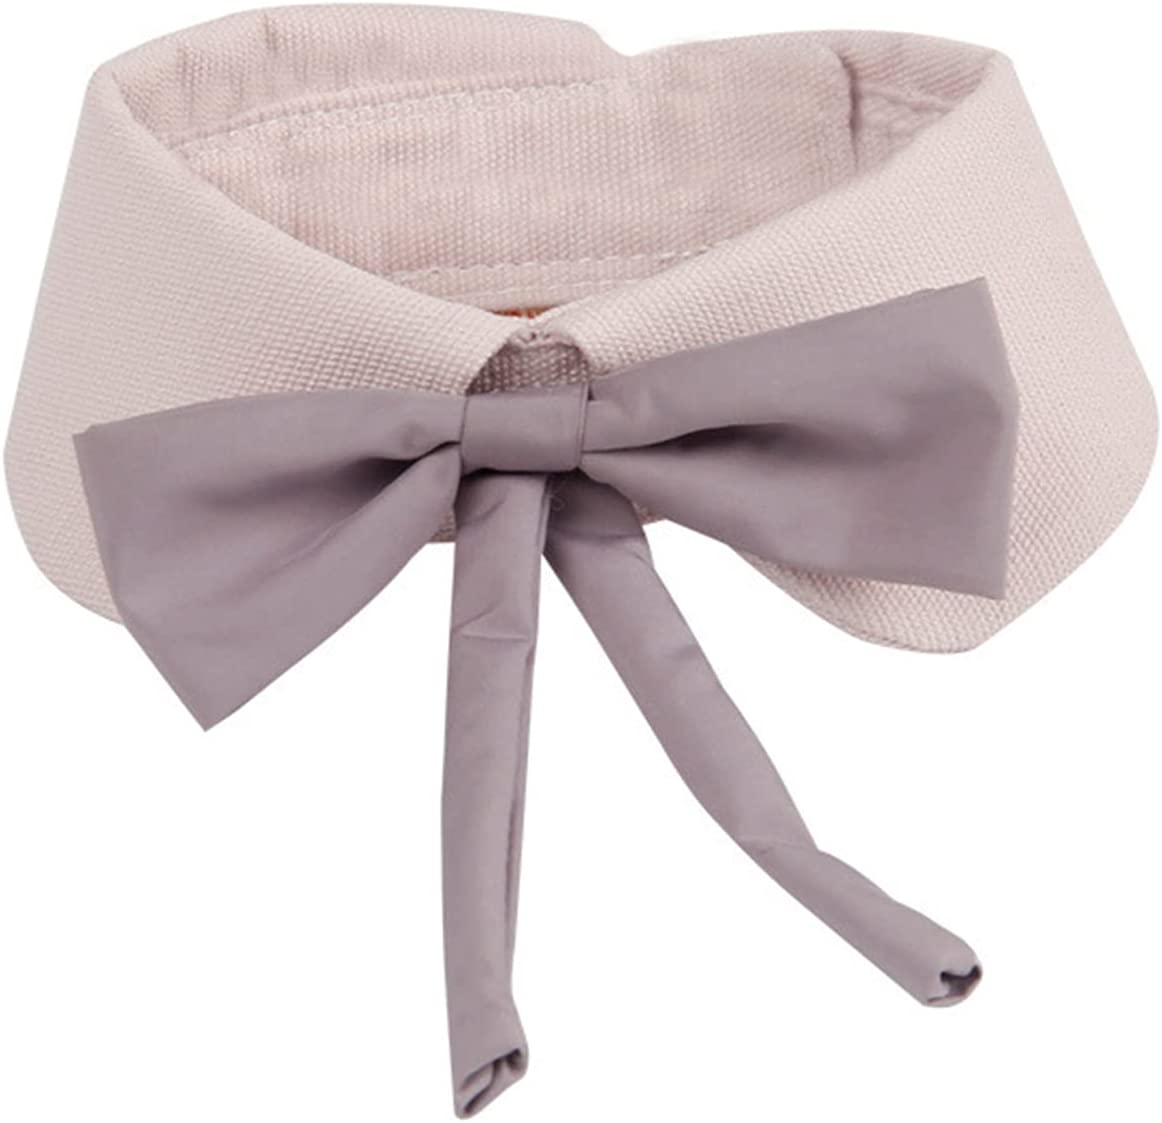 Petyoung New Shipping Free Shipping Pet Bow Tie Comfortable Suitable Necktie Kitte Be super welcome Bows for